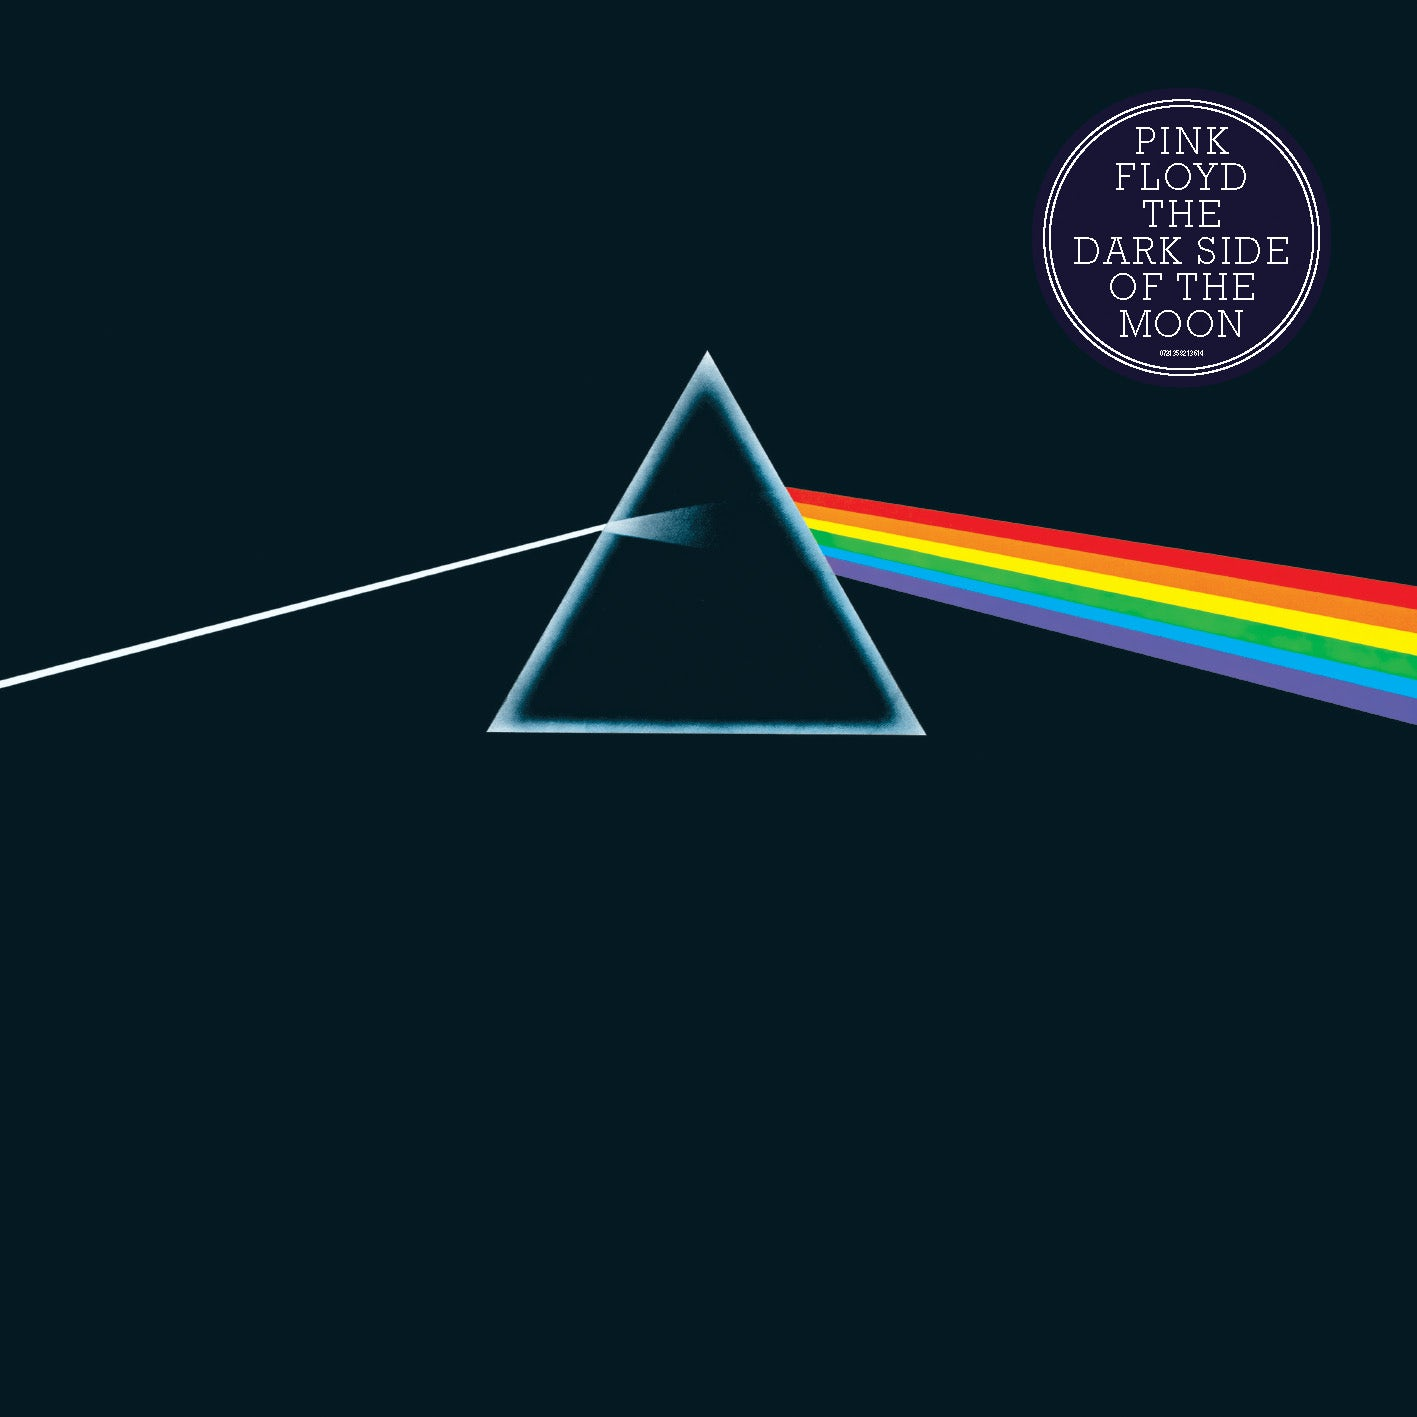 Cover art for Dark Side of the Moon. Design: Hipgnosis. Illustration: George Hardie